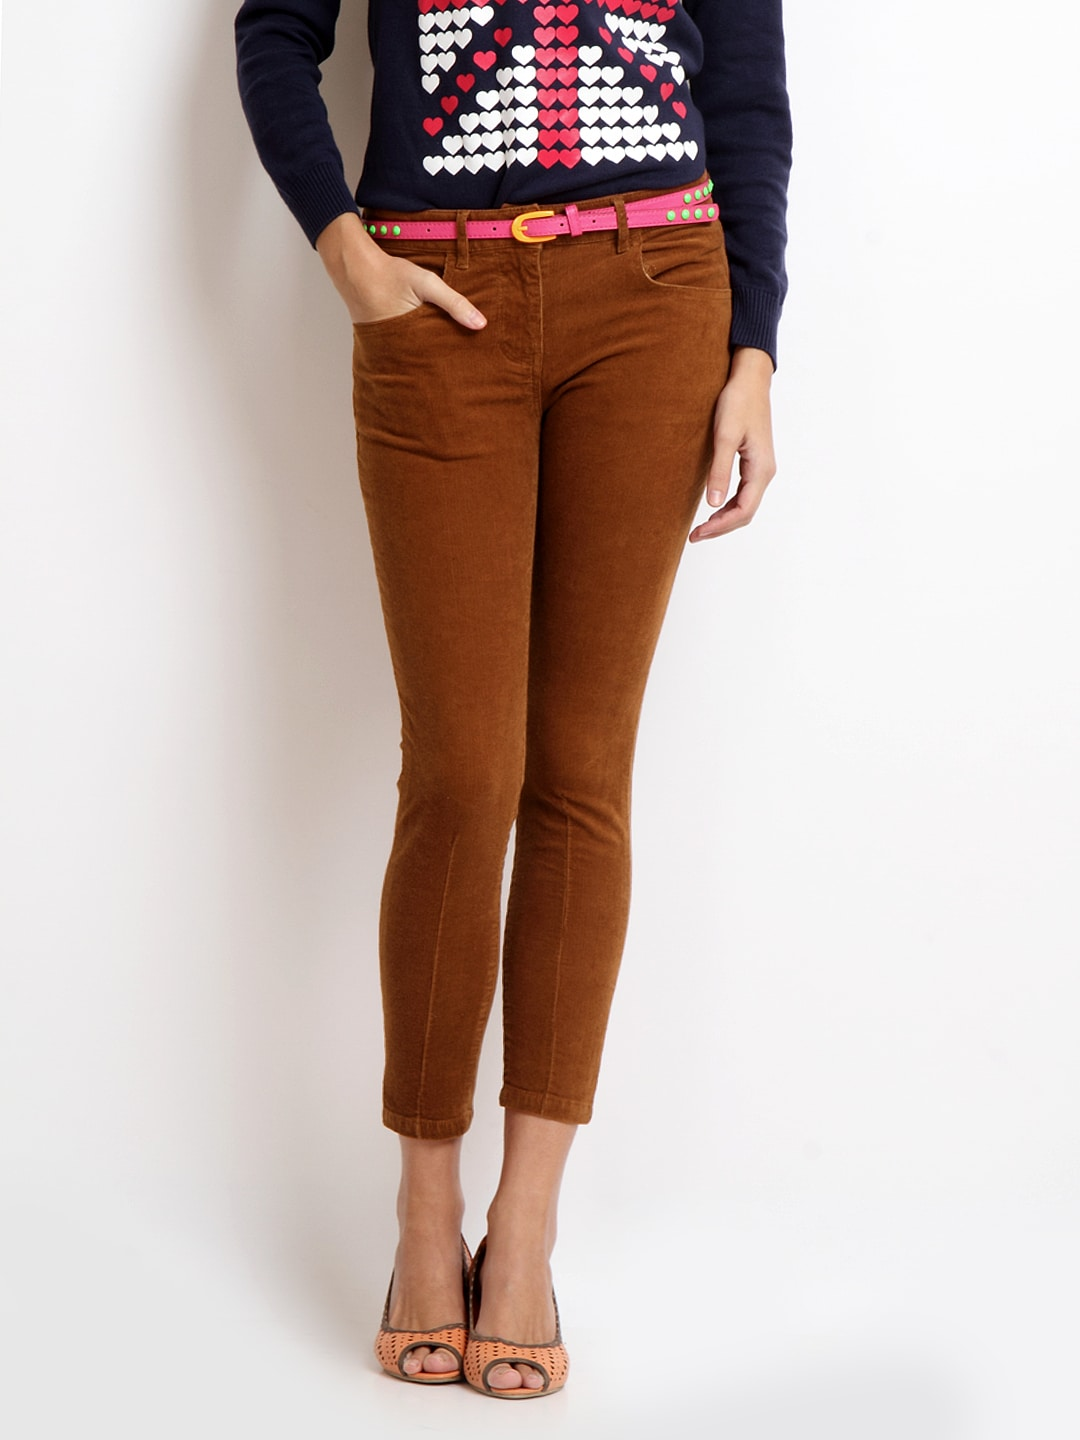 brown corduroy pants for women - Pi Pants